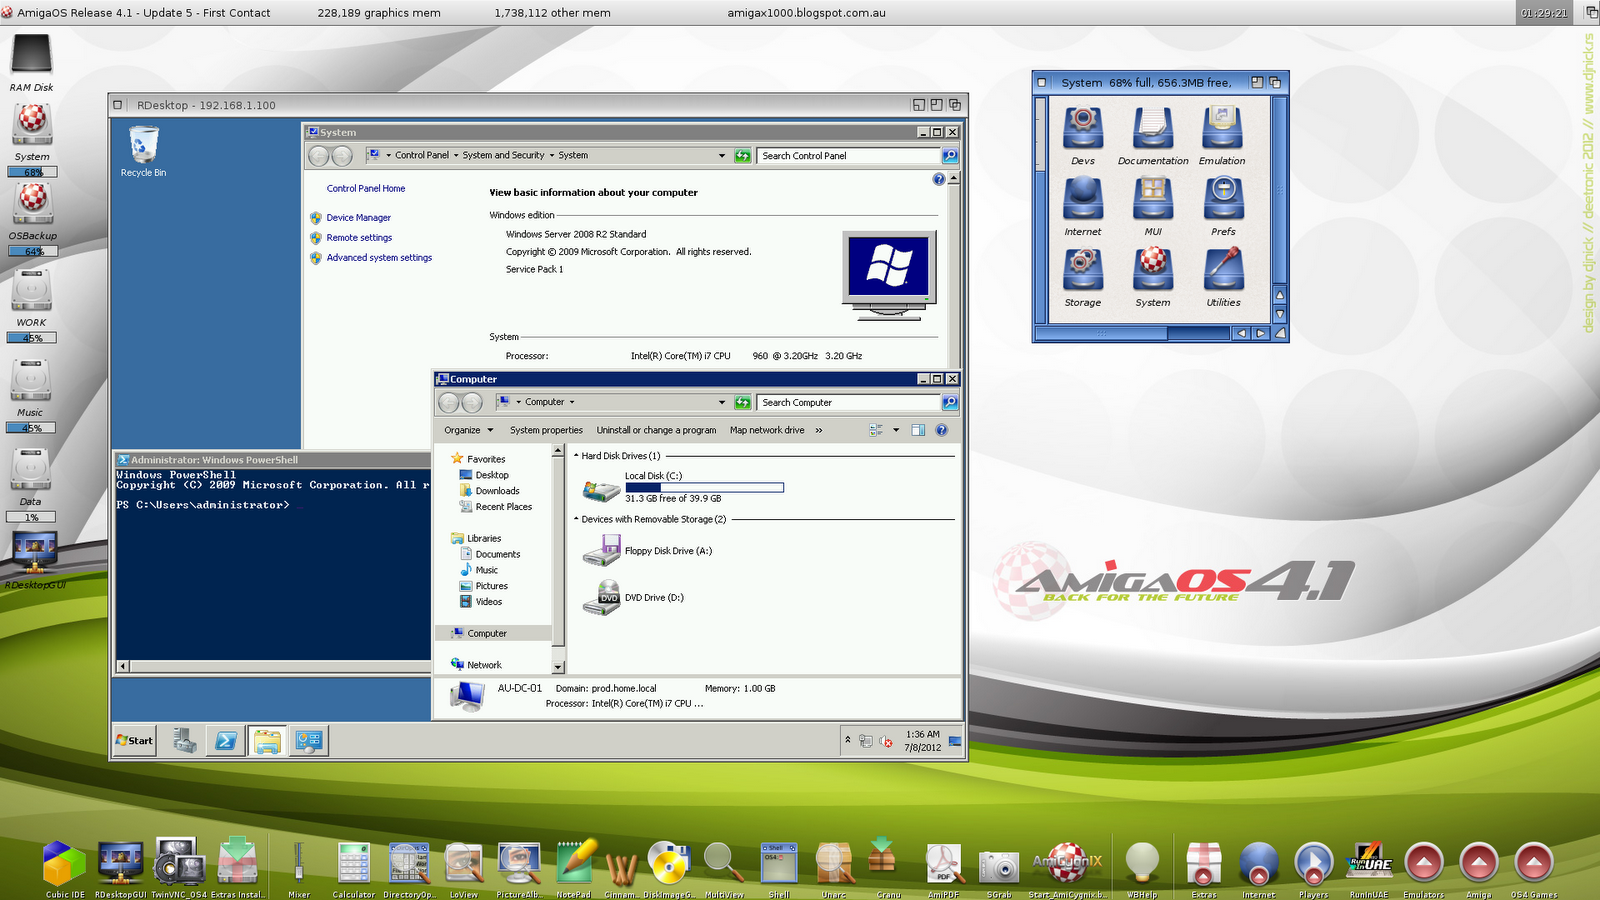 systems like macos x or linux etc you can use vnc server installed on those computers with twinvnc on your x1000 to connect to them remotely